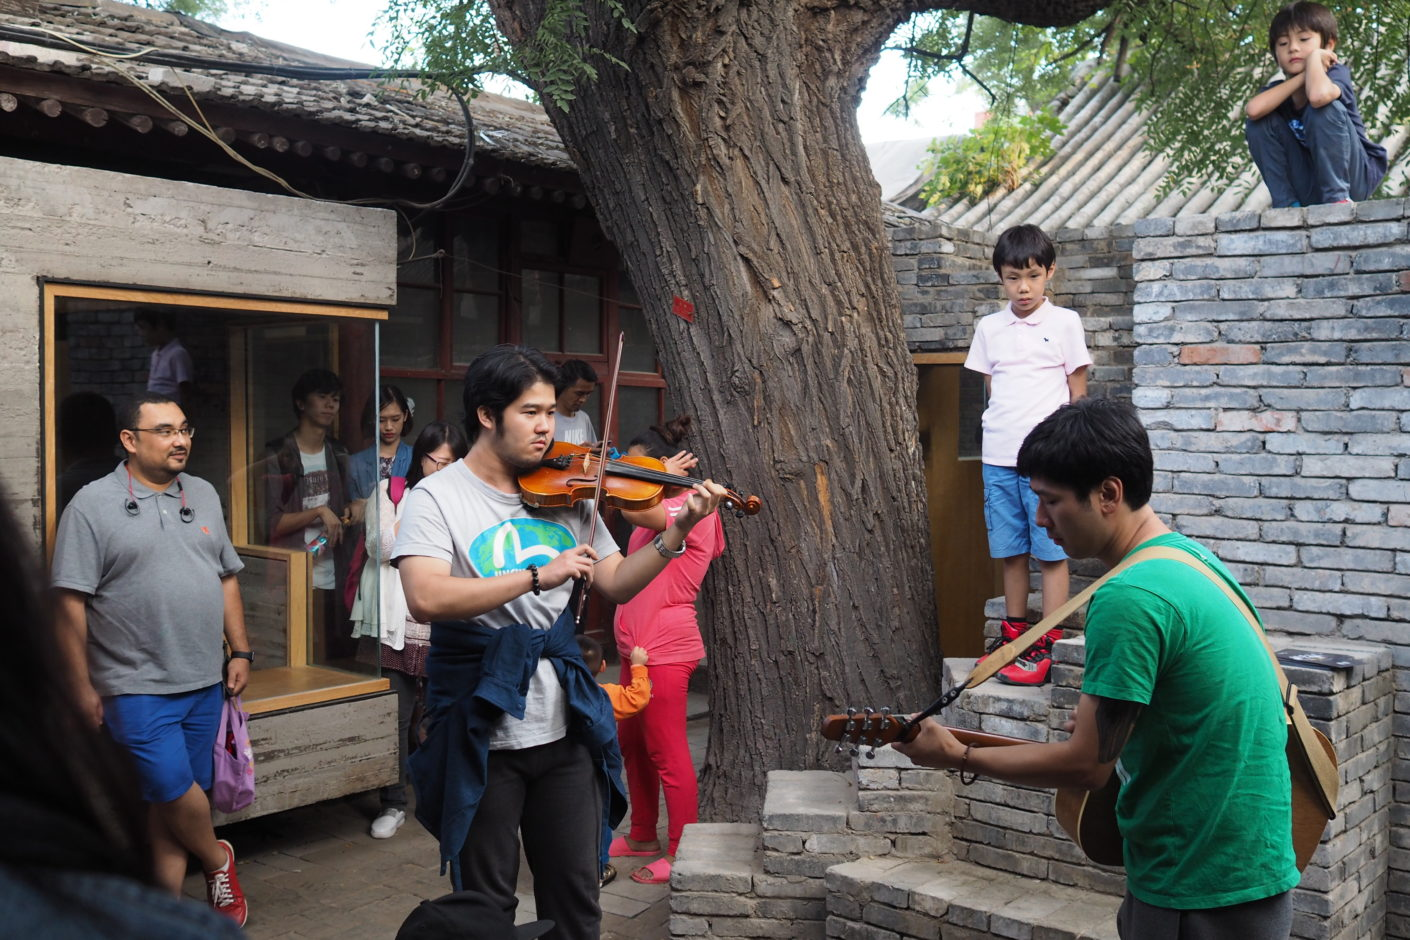 Micro Yuan'er by standardarchiteture / Zhang Ke in Dashilar Hutong in Beijing, Beijing Design Week 2016